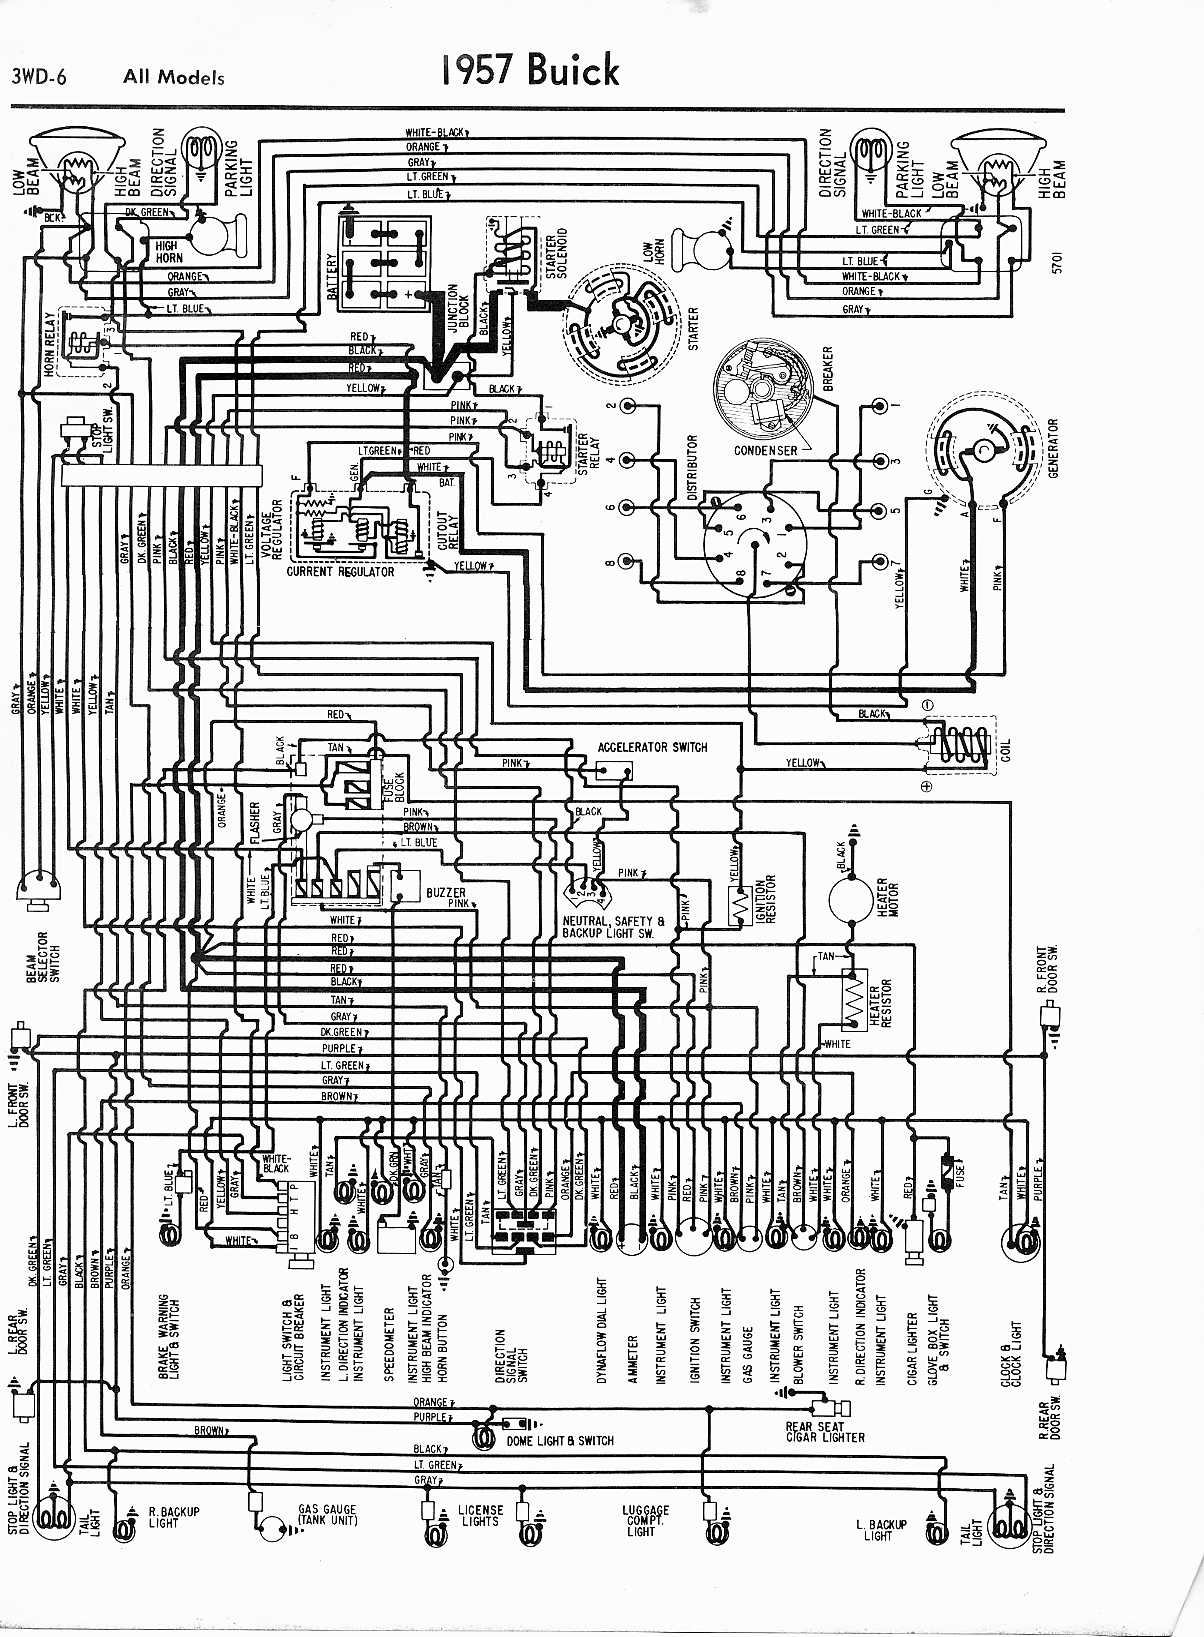 American Wiring Diagram 1972 Chevelle Buick Wiring Diagrams 1957 1965